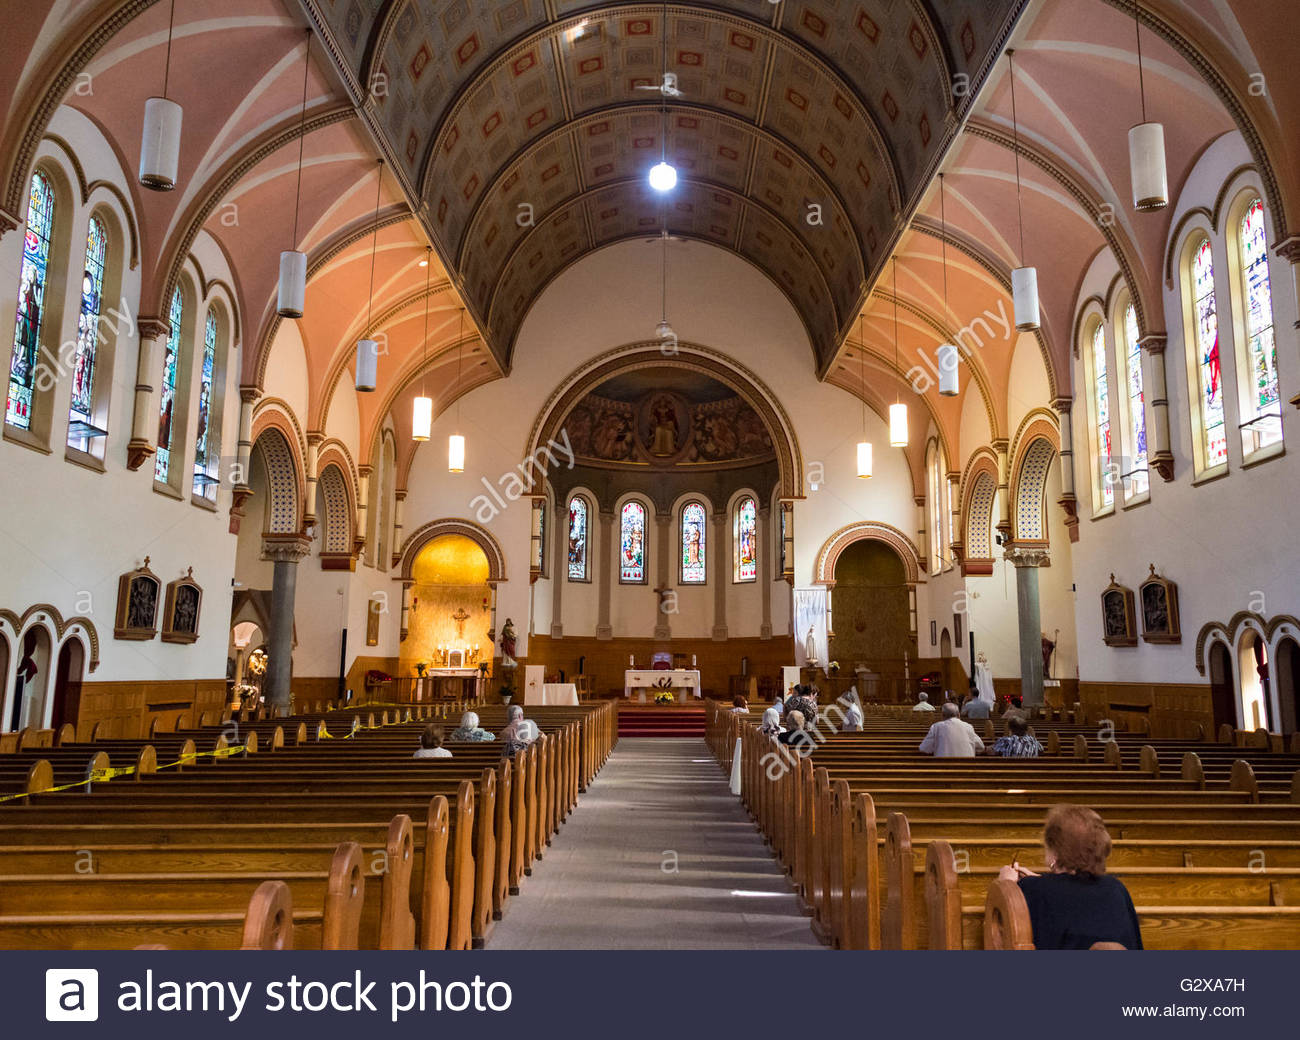 Saint St Anthonys Catholic Church Gothic Revival Interior Details The Is Located In Bloor Street Downtown Toronto